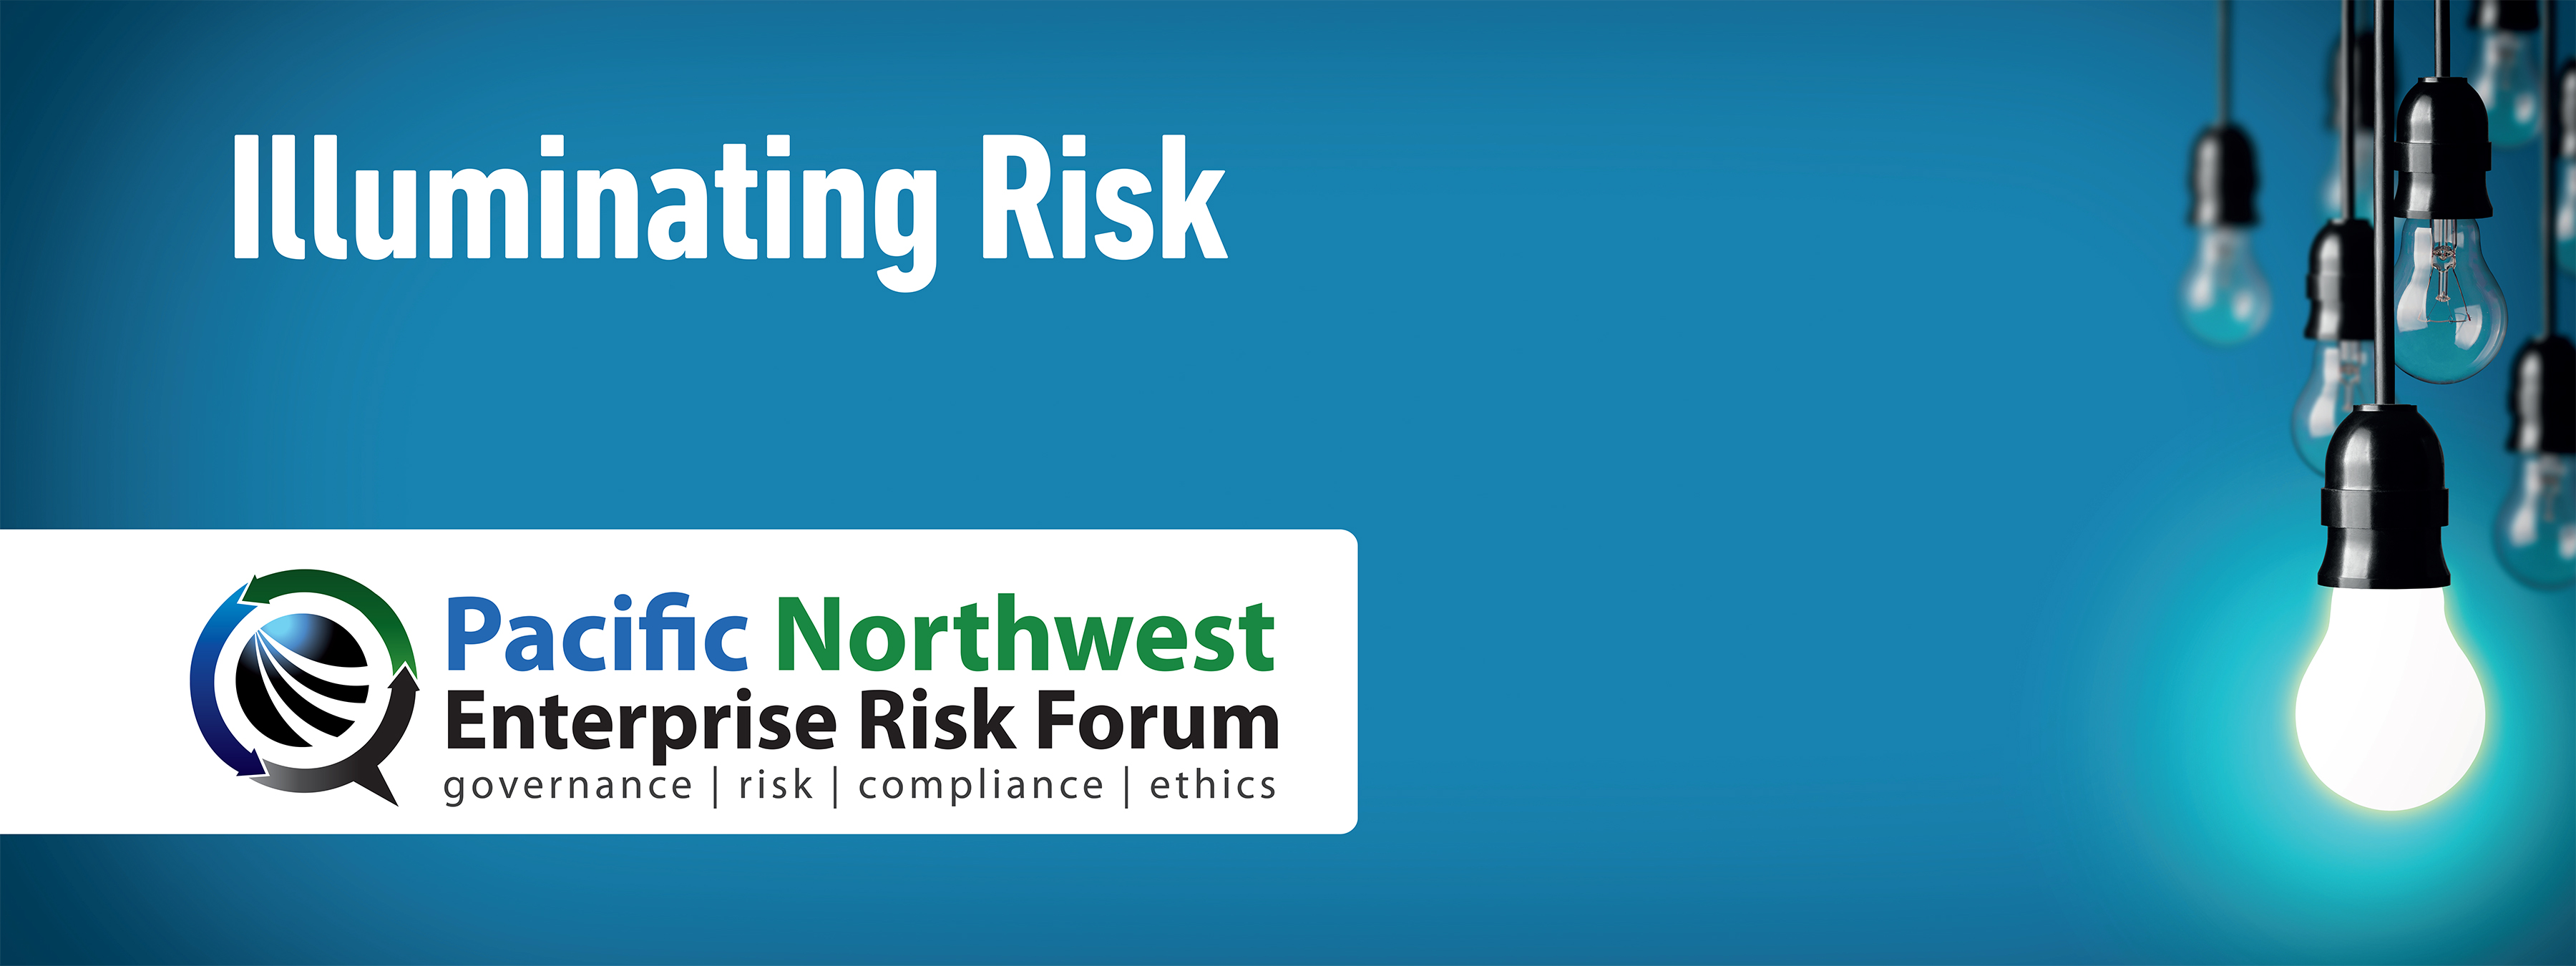 2018 Pacific Northwest Enterprise Risk Forum